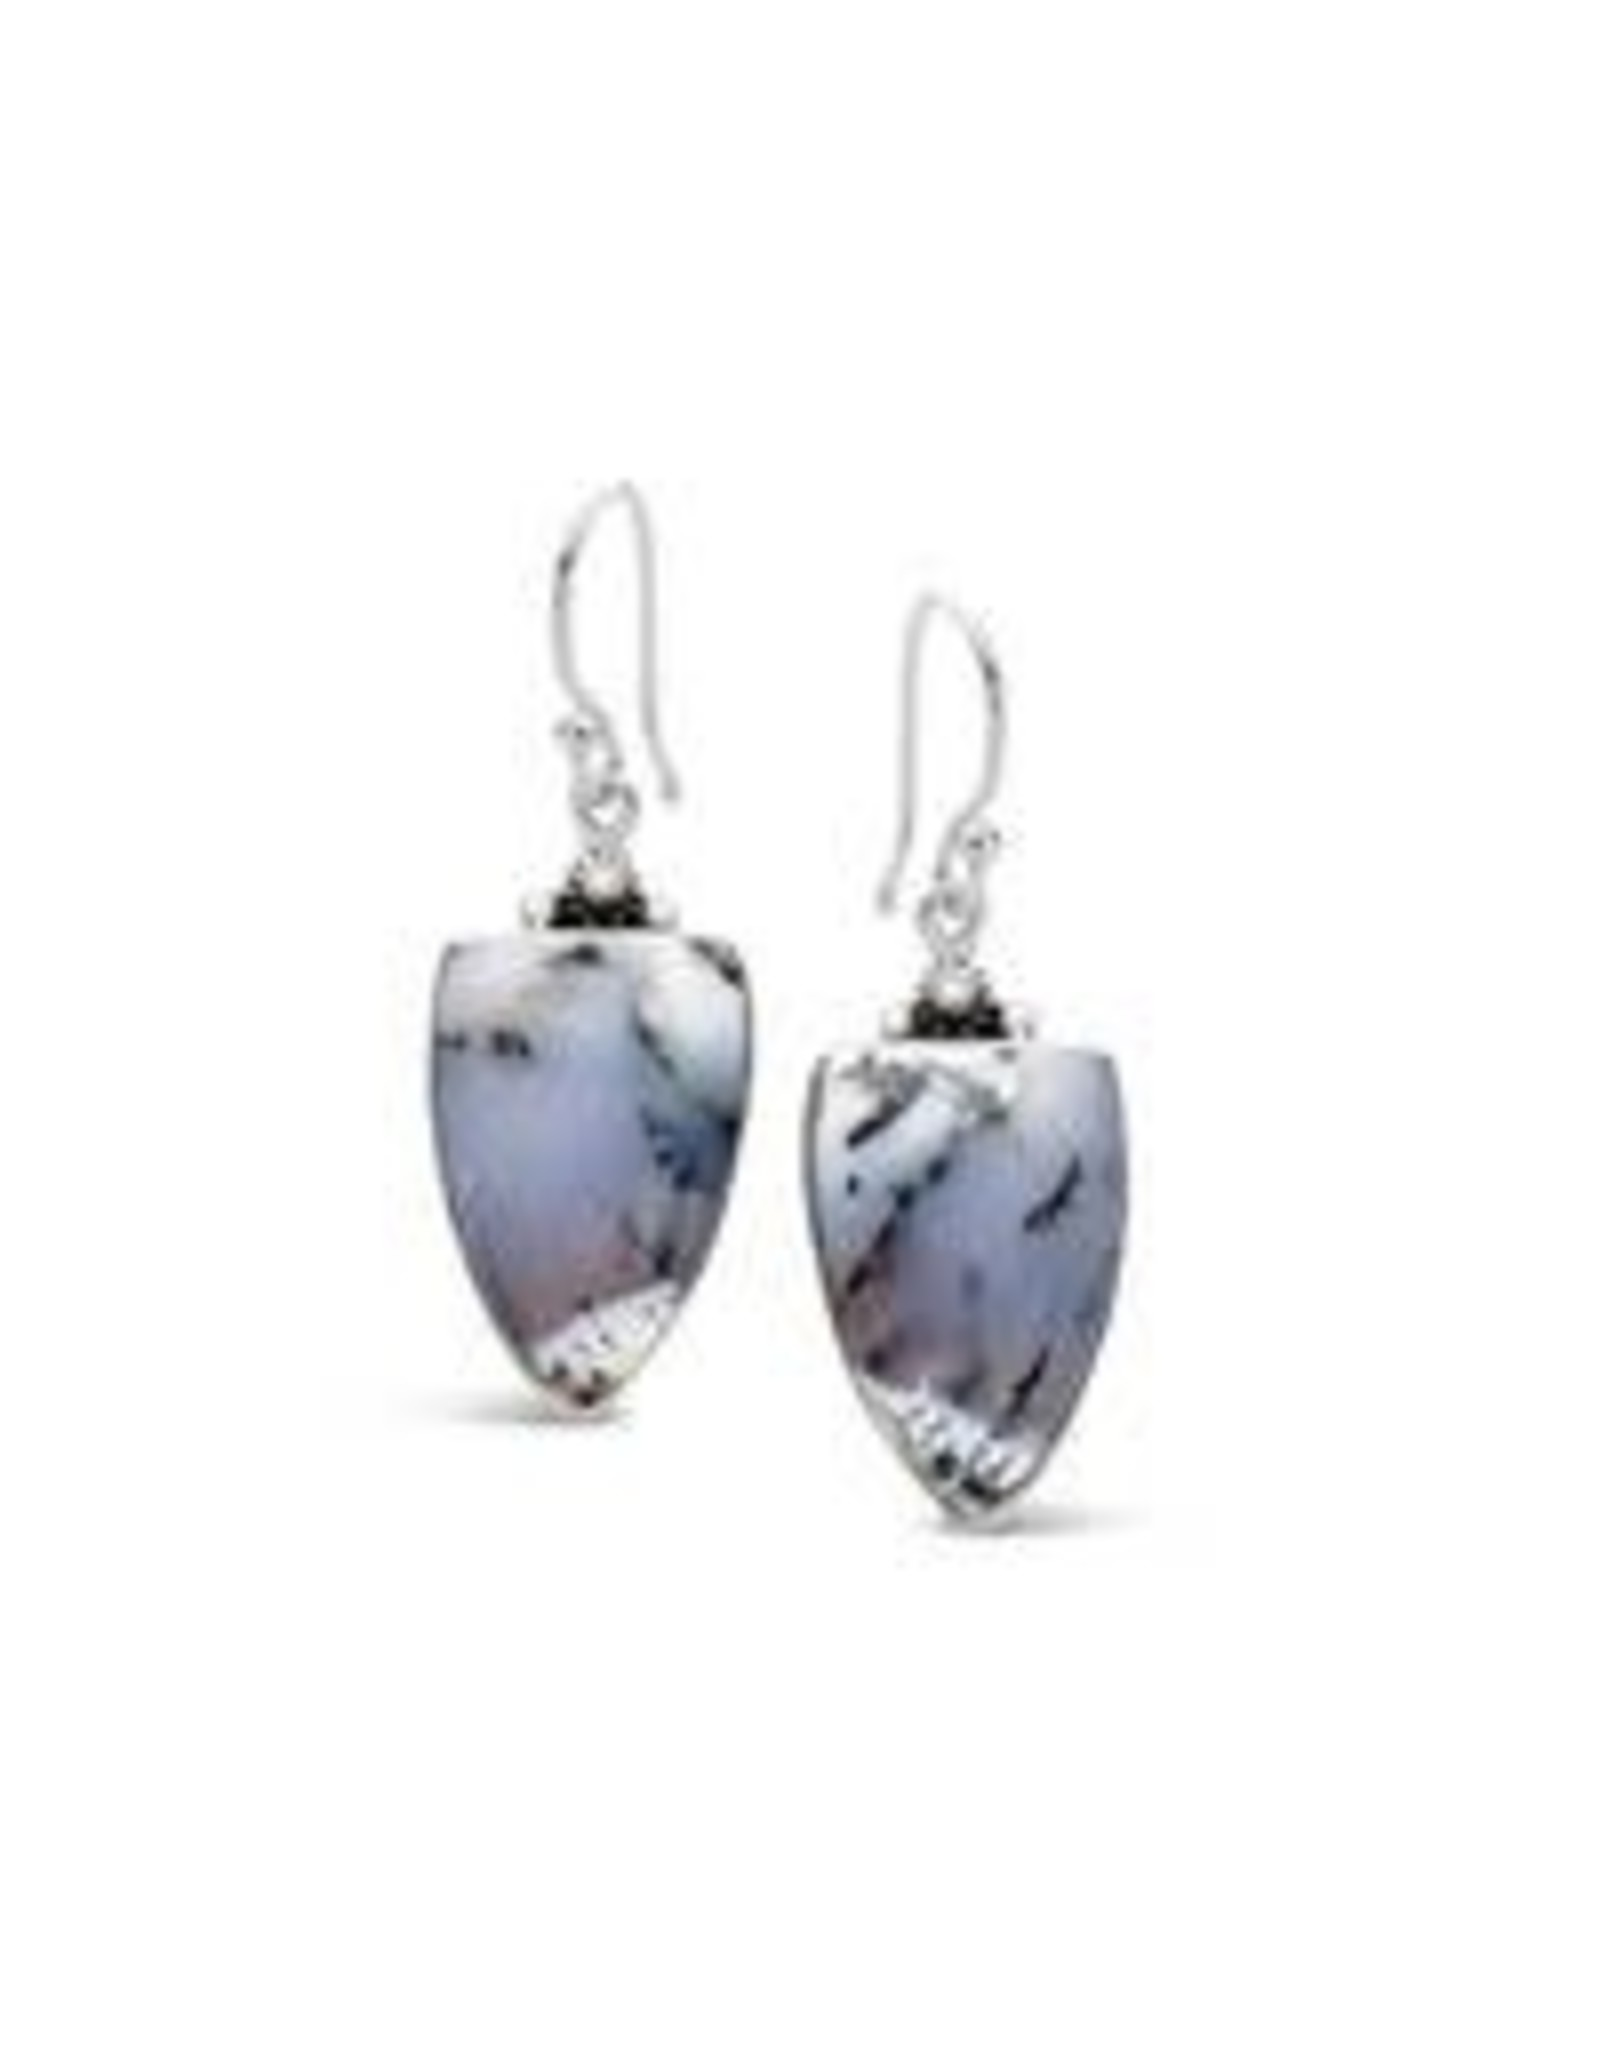 Stones & Silver Dendritic Agate Earrings (925 SS) 25x15mm